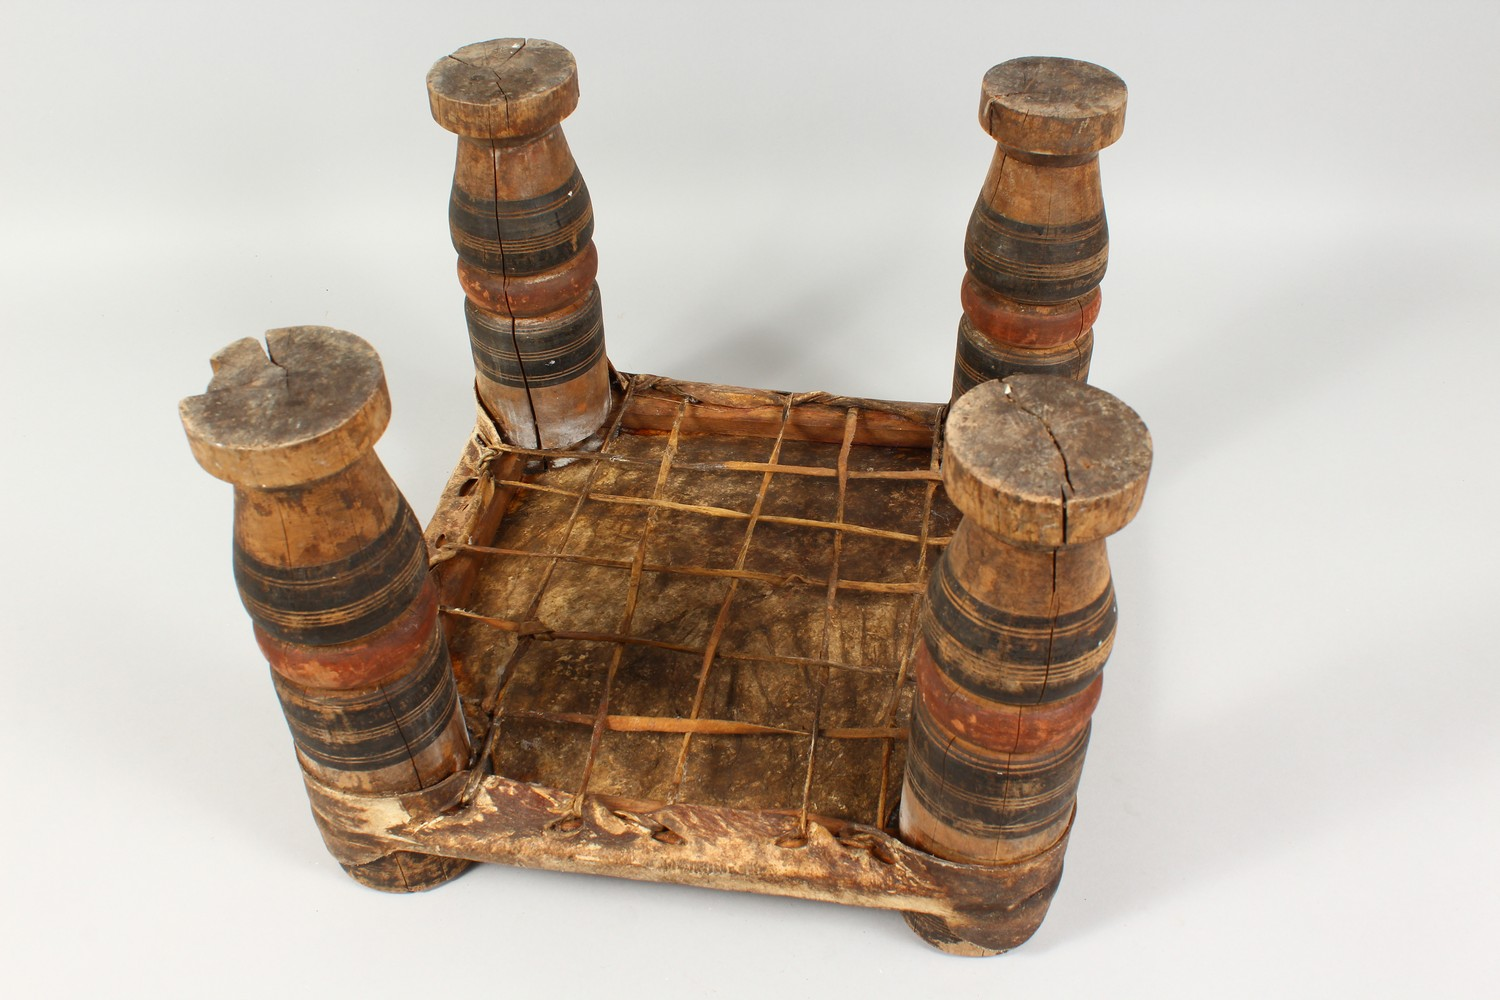 A NORTH AFRICAN PAINTED WOOD AND ANIMAL SKIN SQUARE SHAPED STOOL. 15ins wide x 11.5ins high. - Image 5 of 8